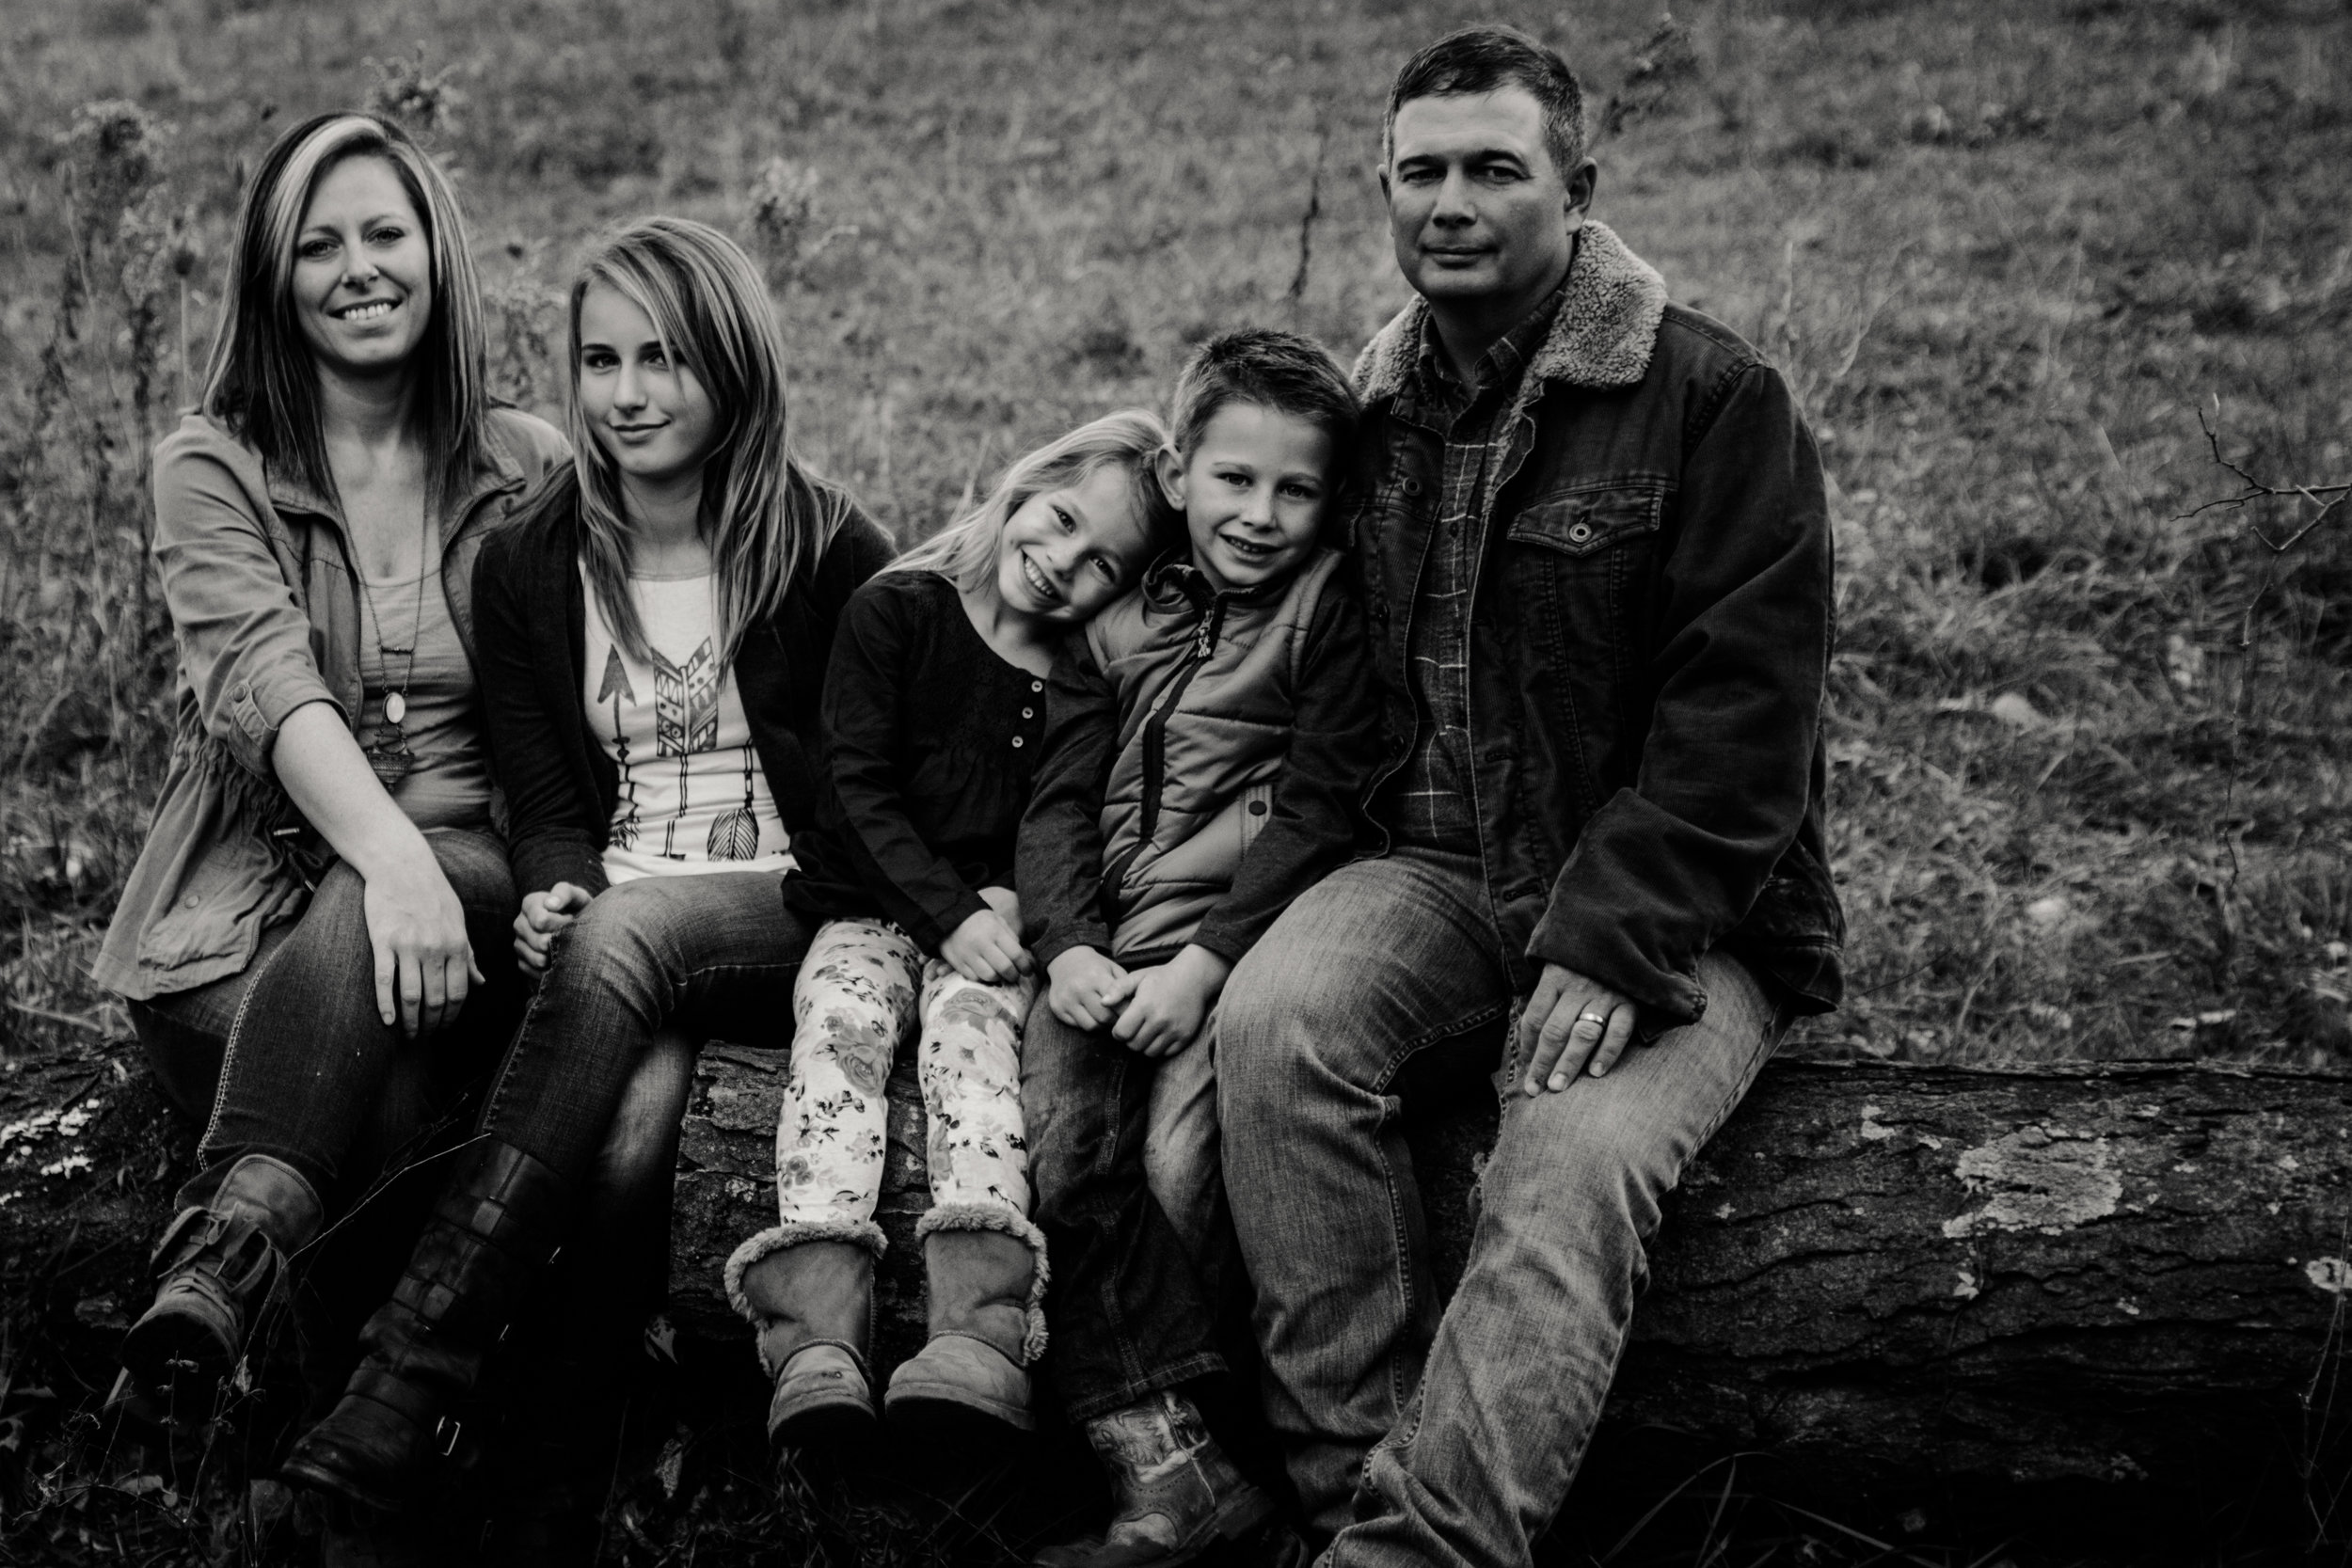 MorganFamilyPhoto.b (1 of 1).jpg